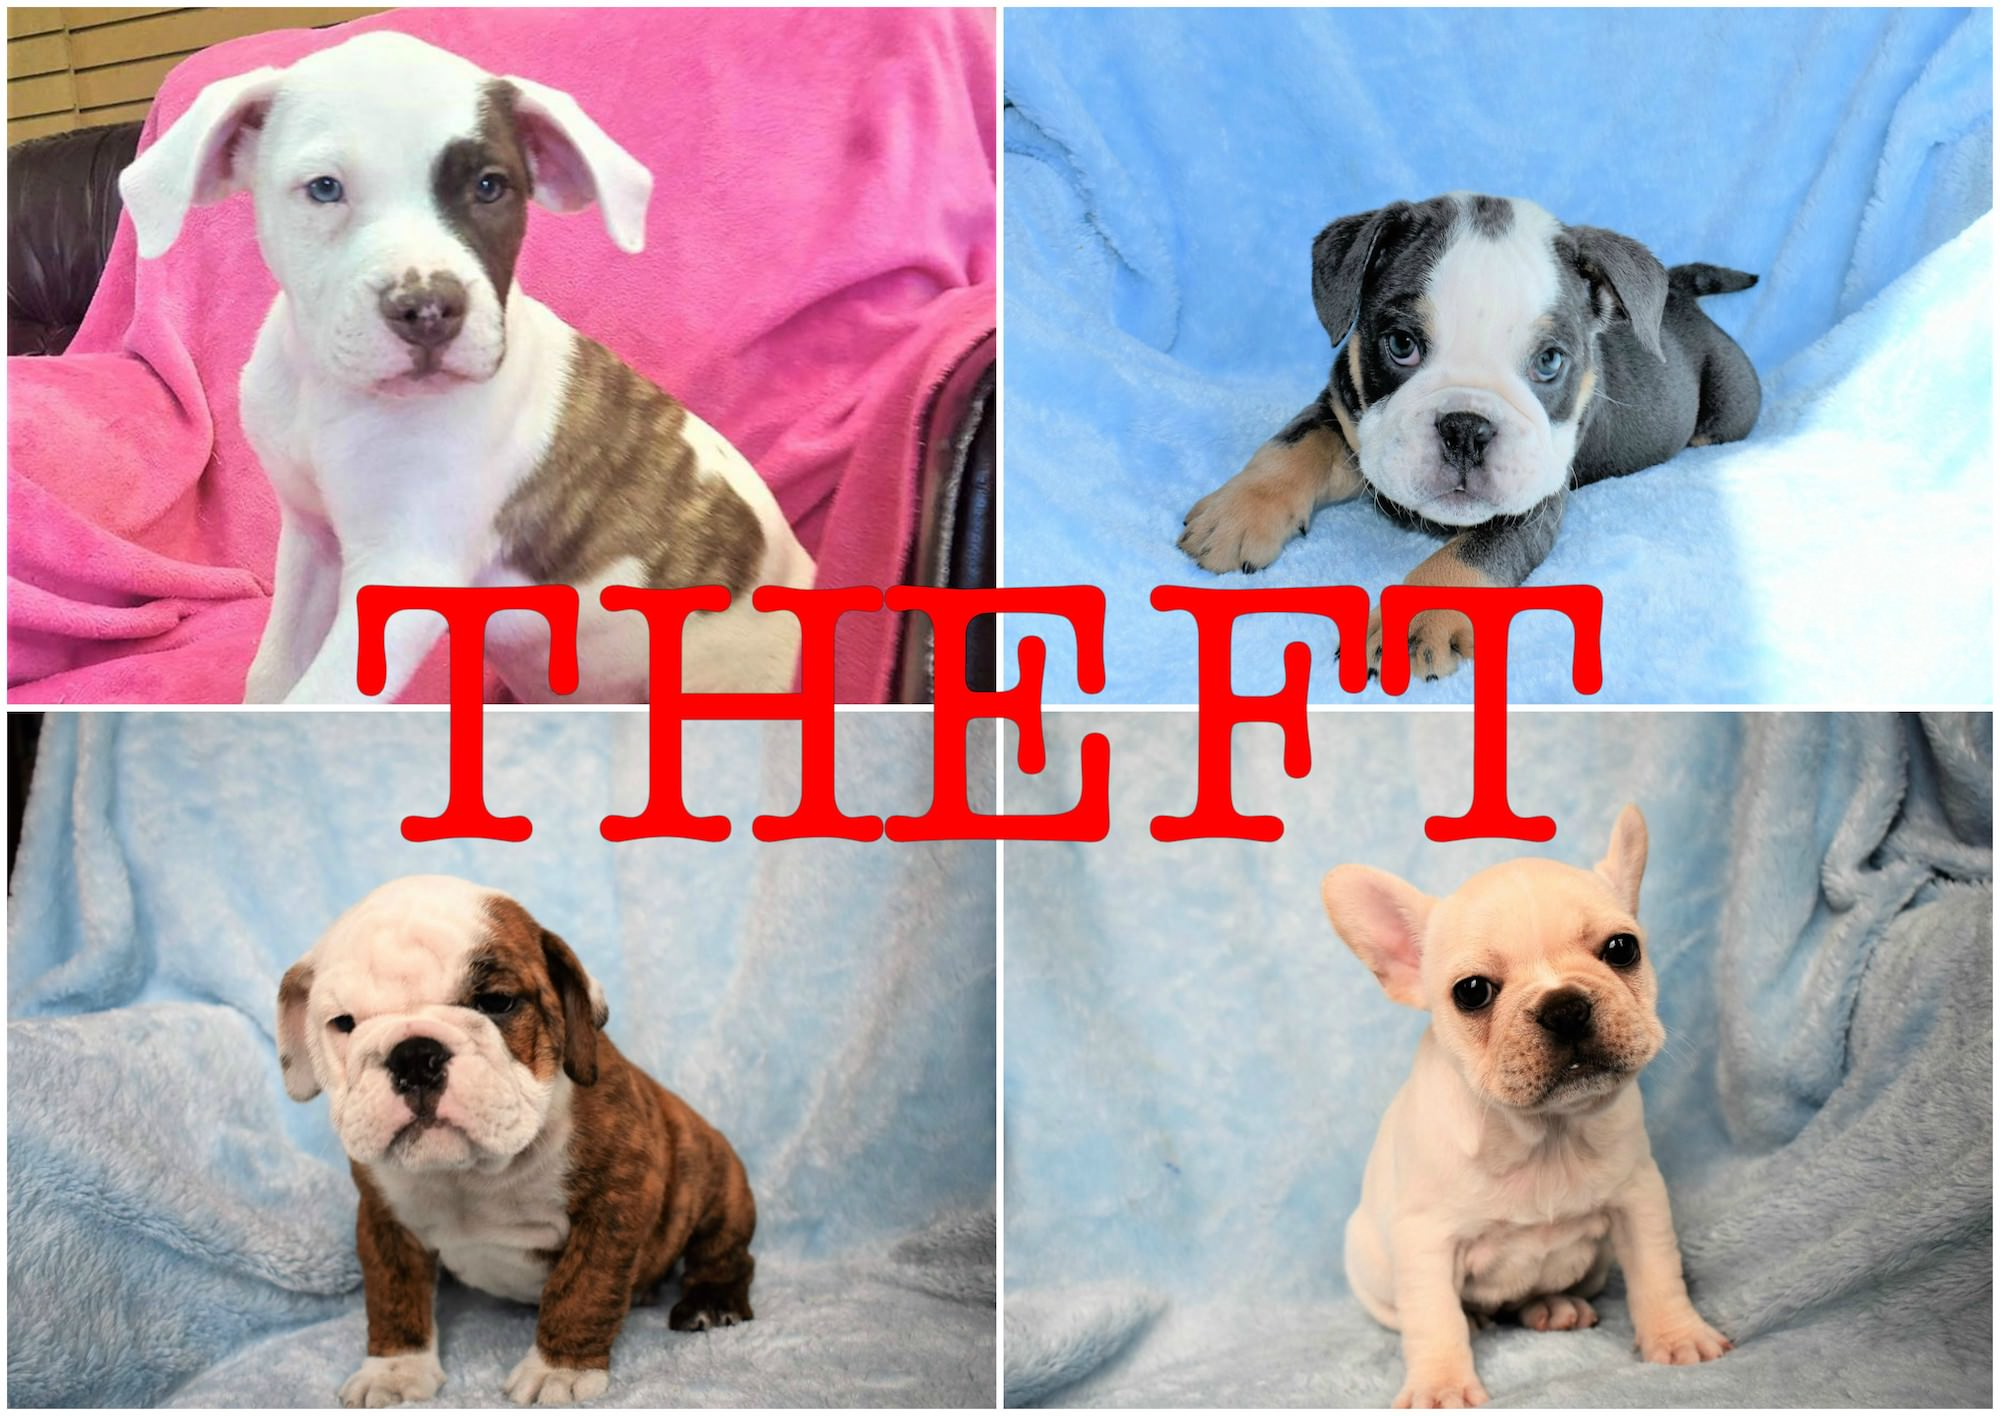 Two puppies stolen from The Velvet Poodle located two others still missing